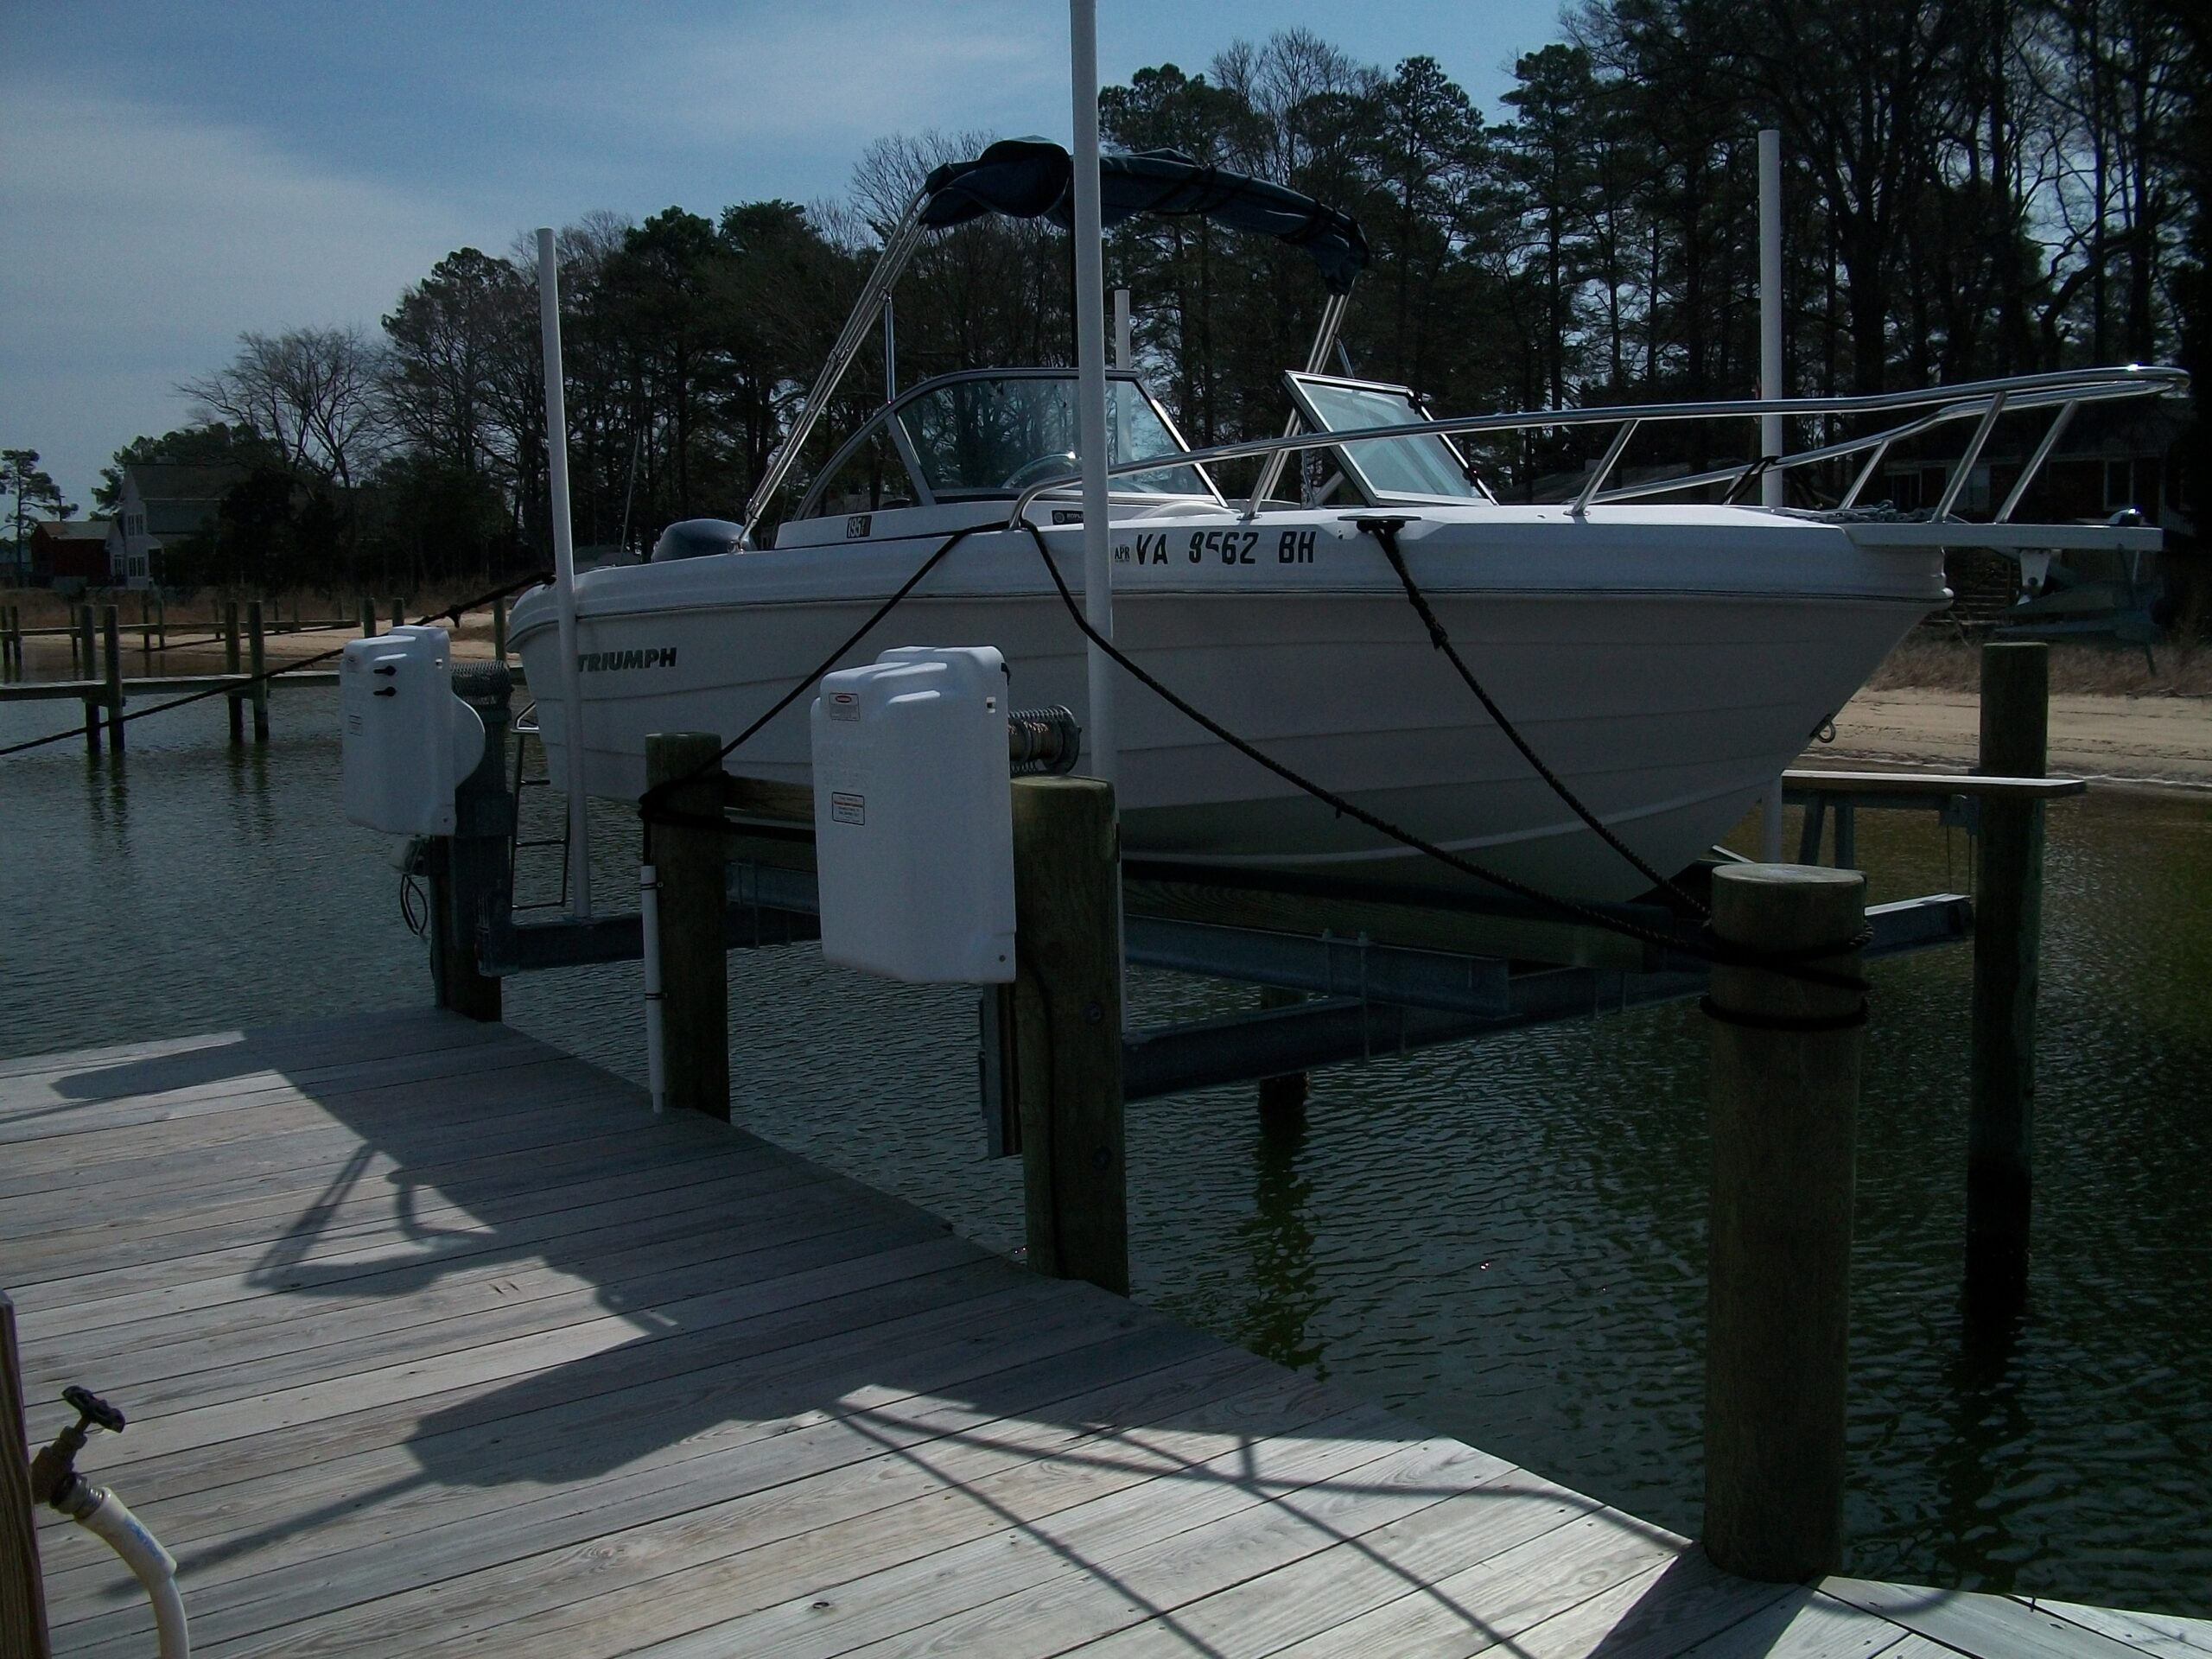 WMC_Boat_Lift-1-scaled.jpg